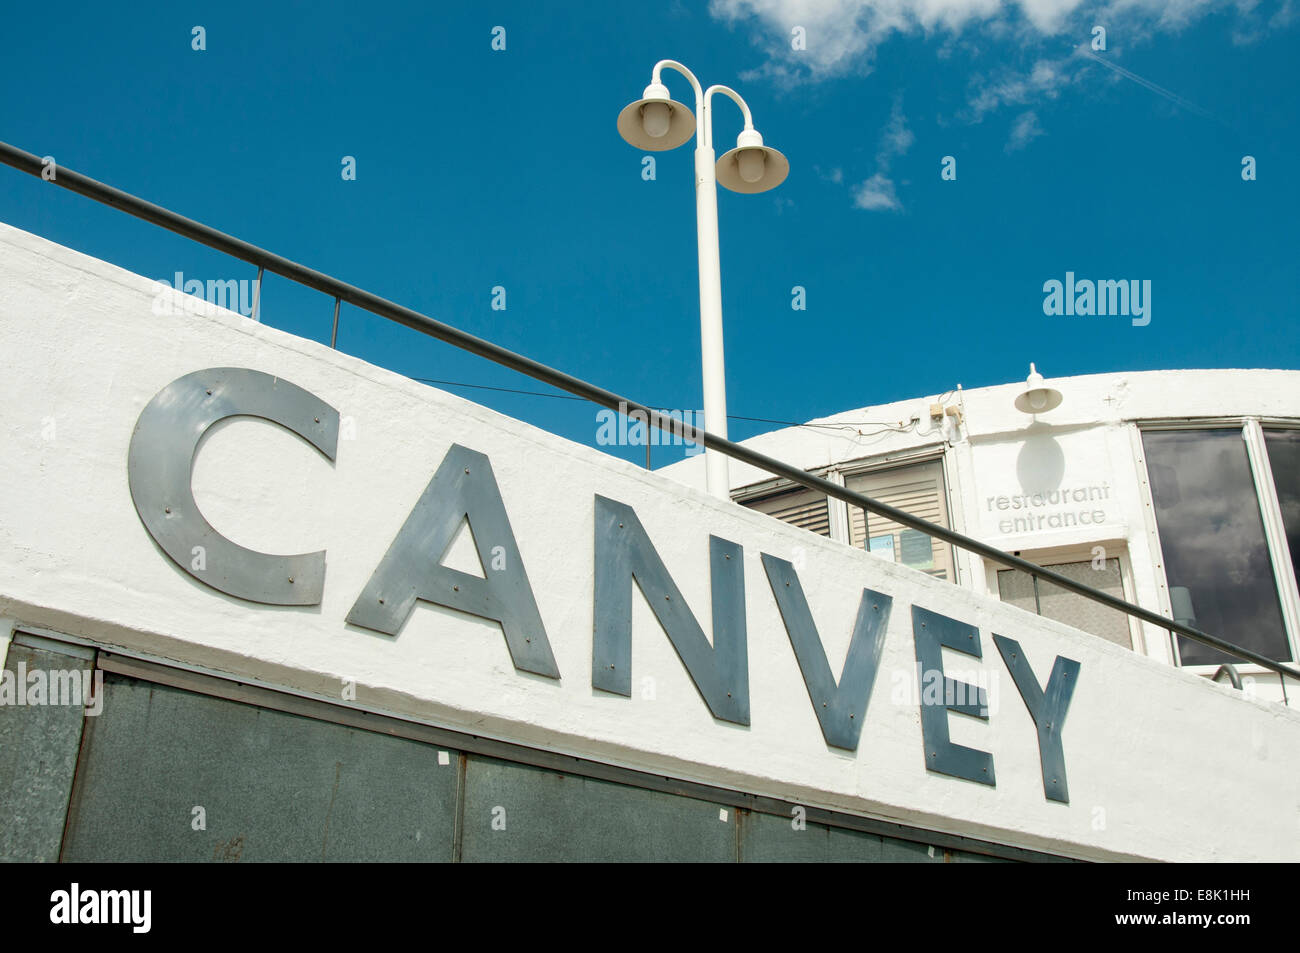 The Labworth Cafe on the waterfront at Canvey Island in Essex, UK - Stock Image